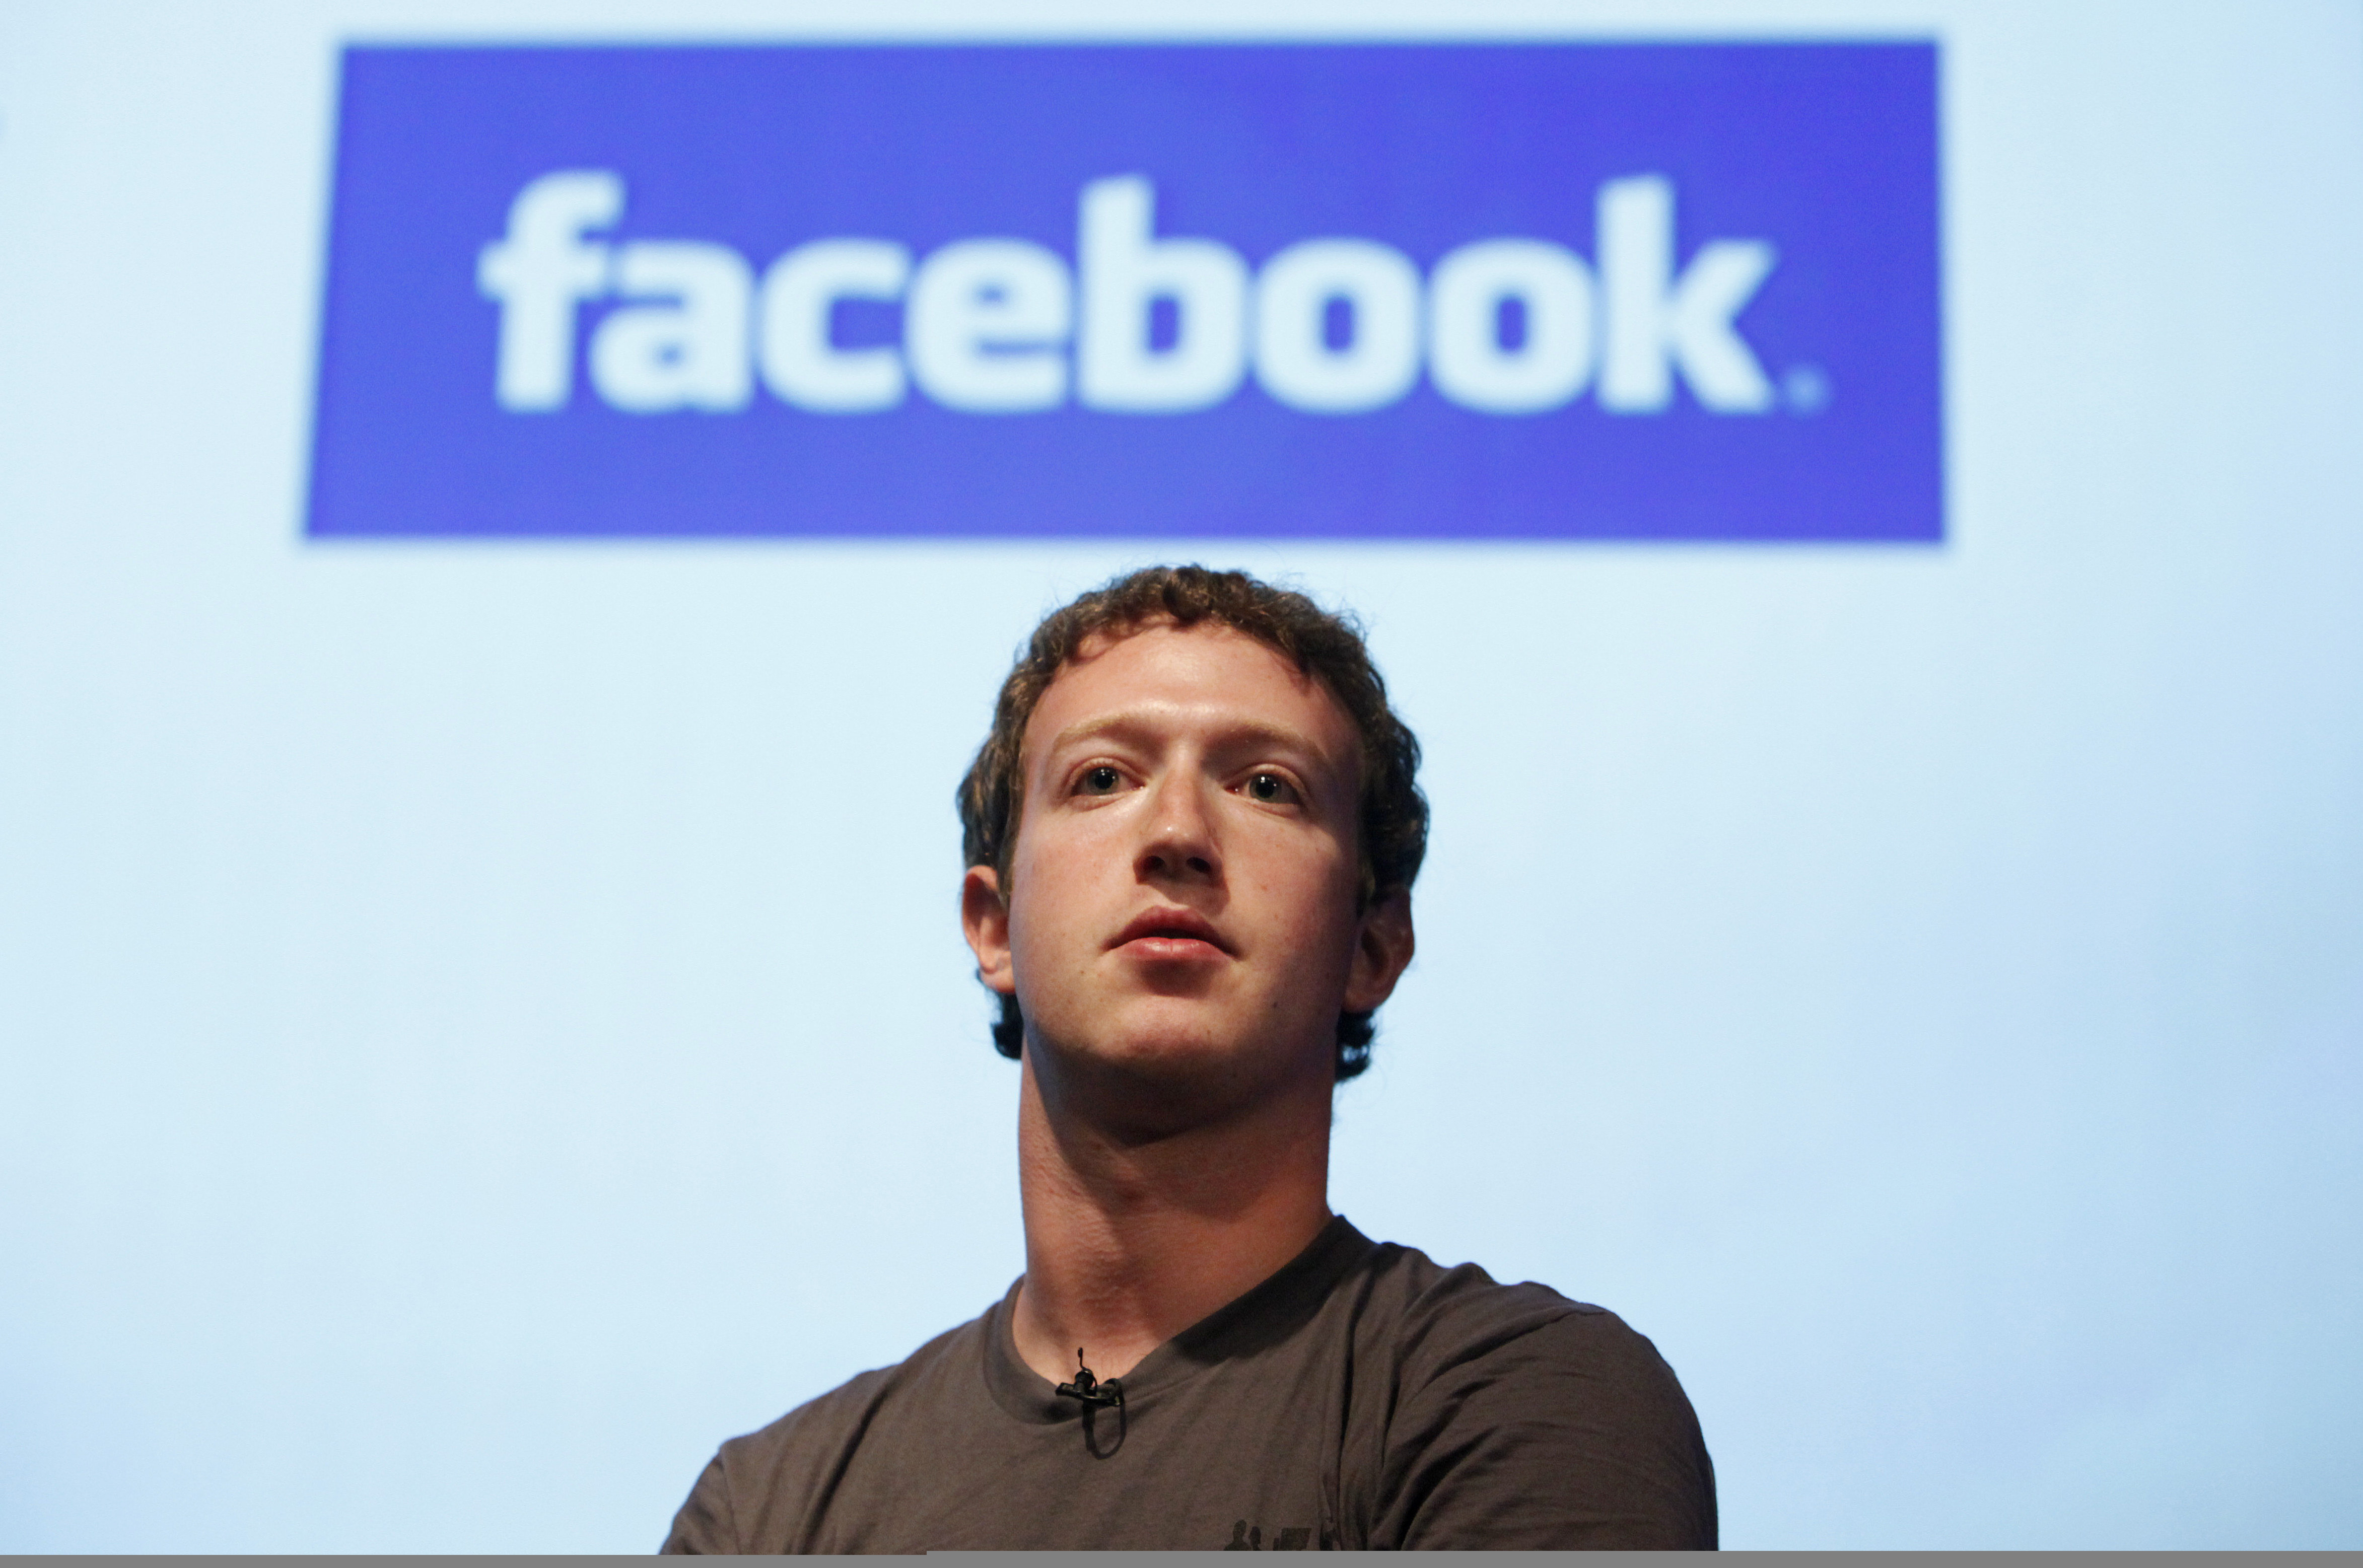 Mark Zuckerberg goes after Marc Andreessen for India comments